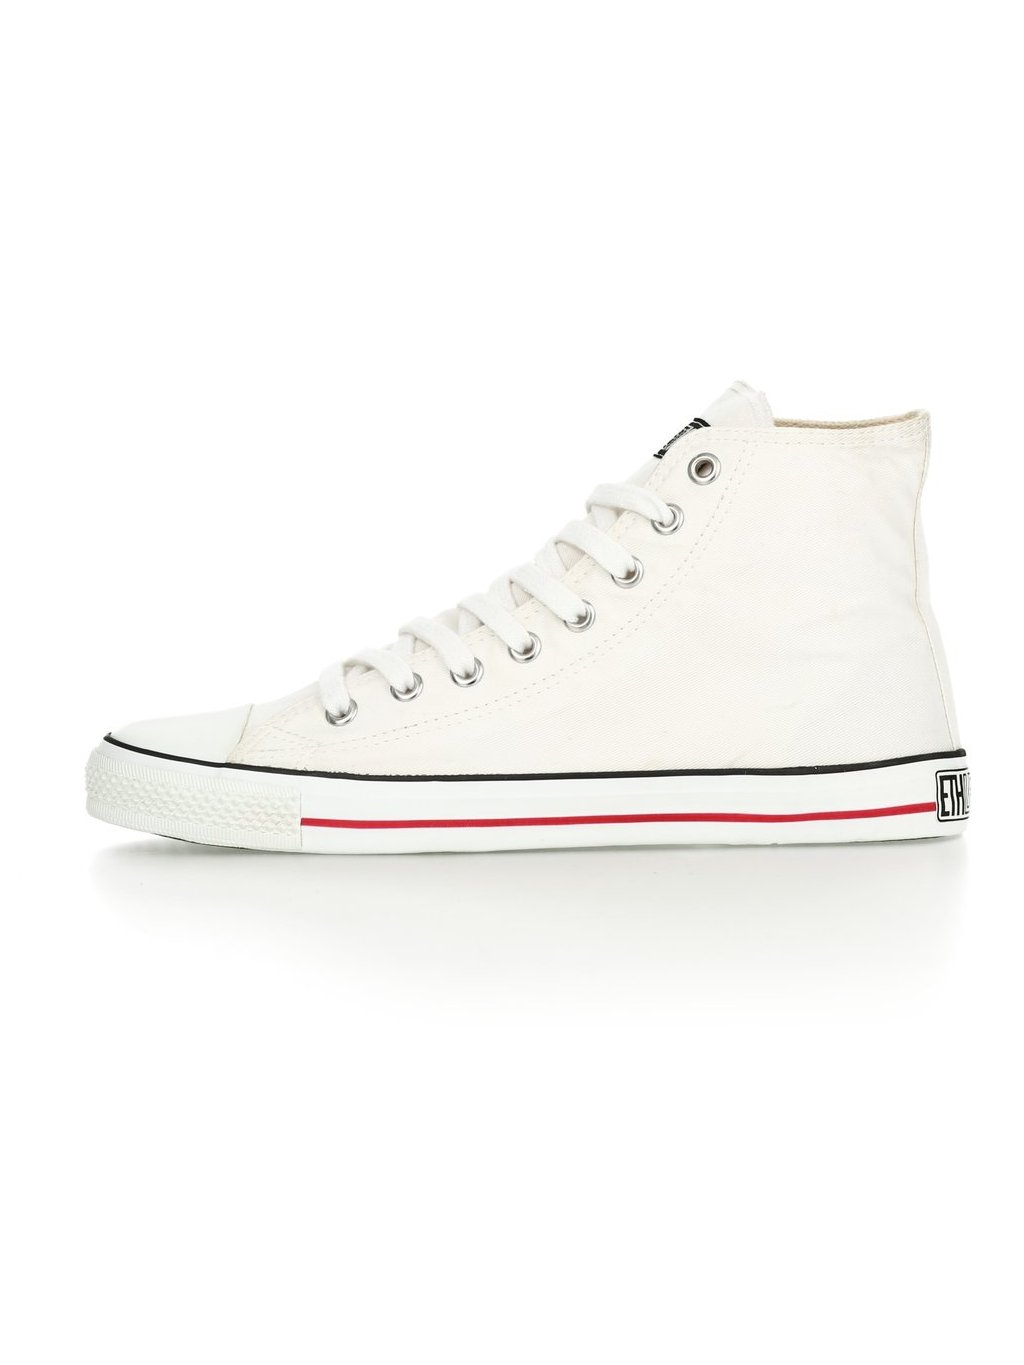 ethletic fair trainer white cap hi cut just white